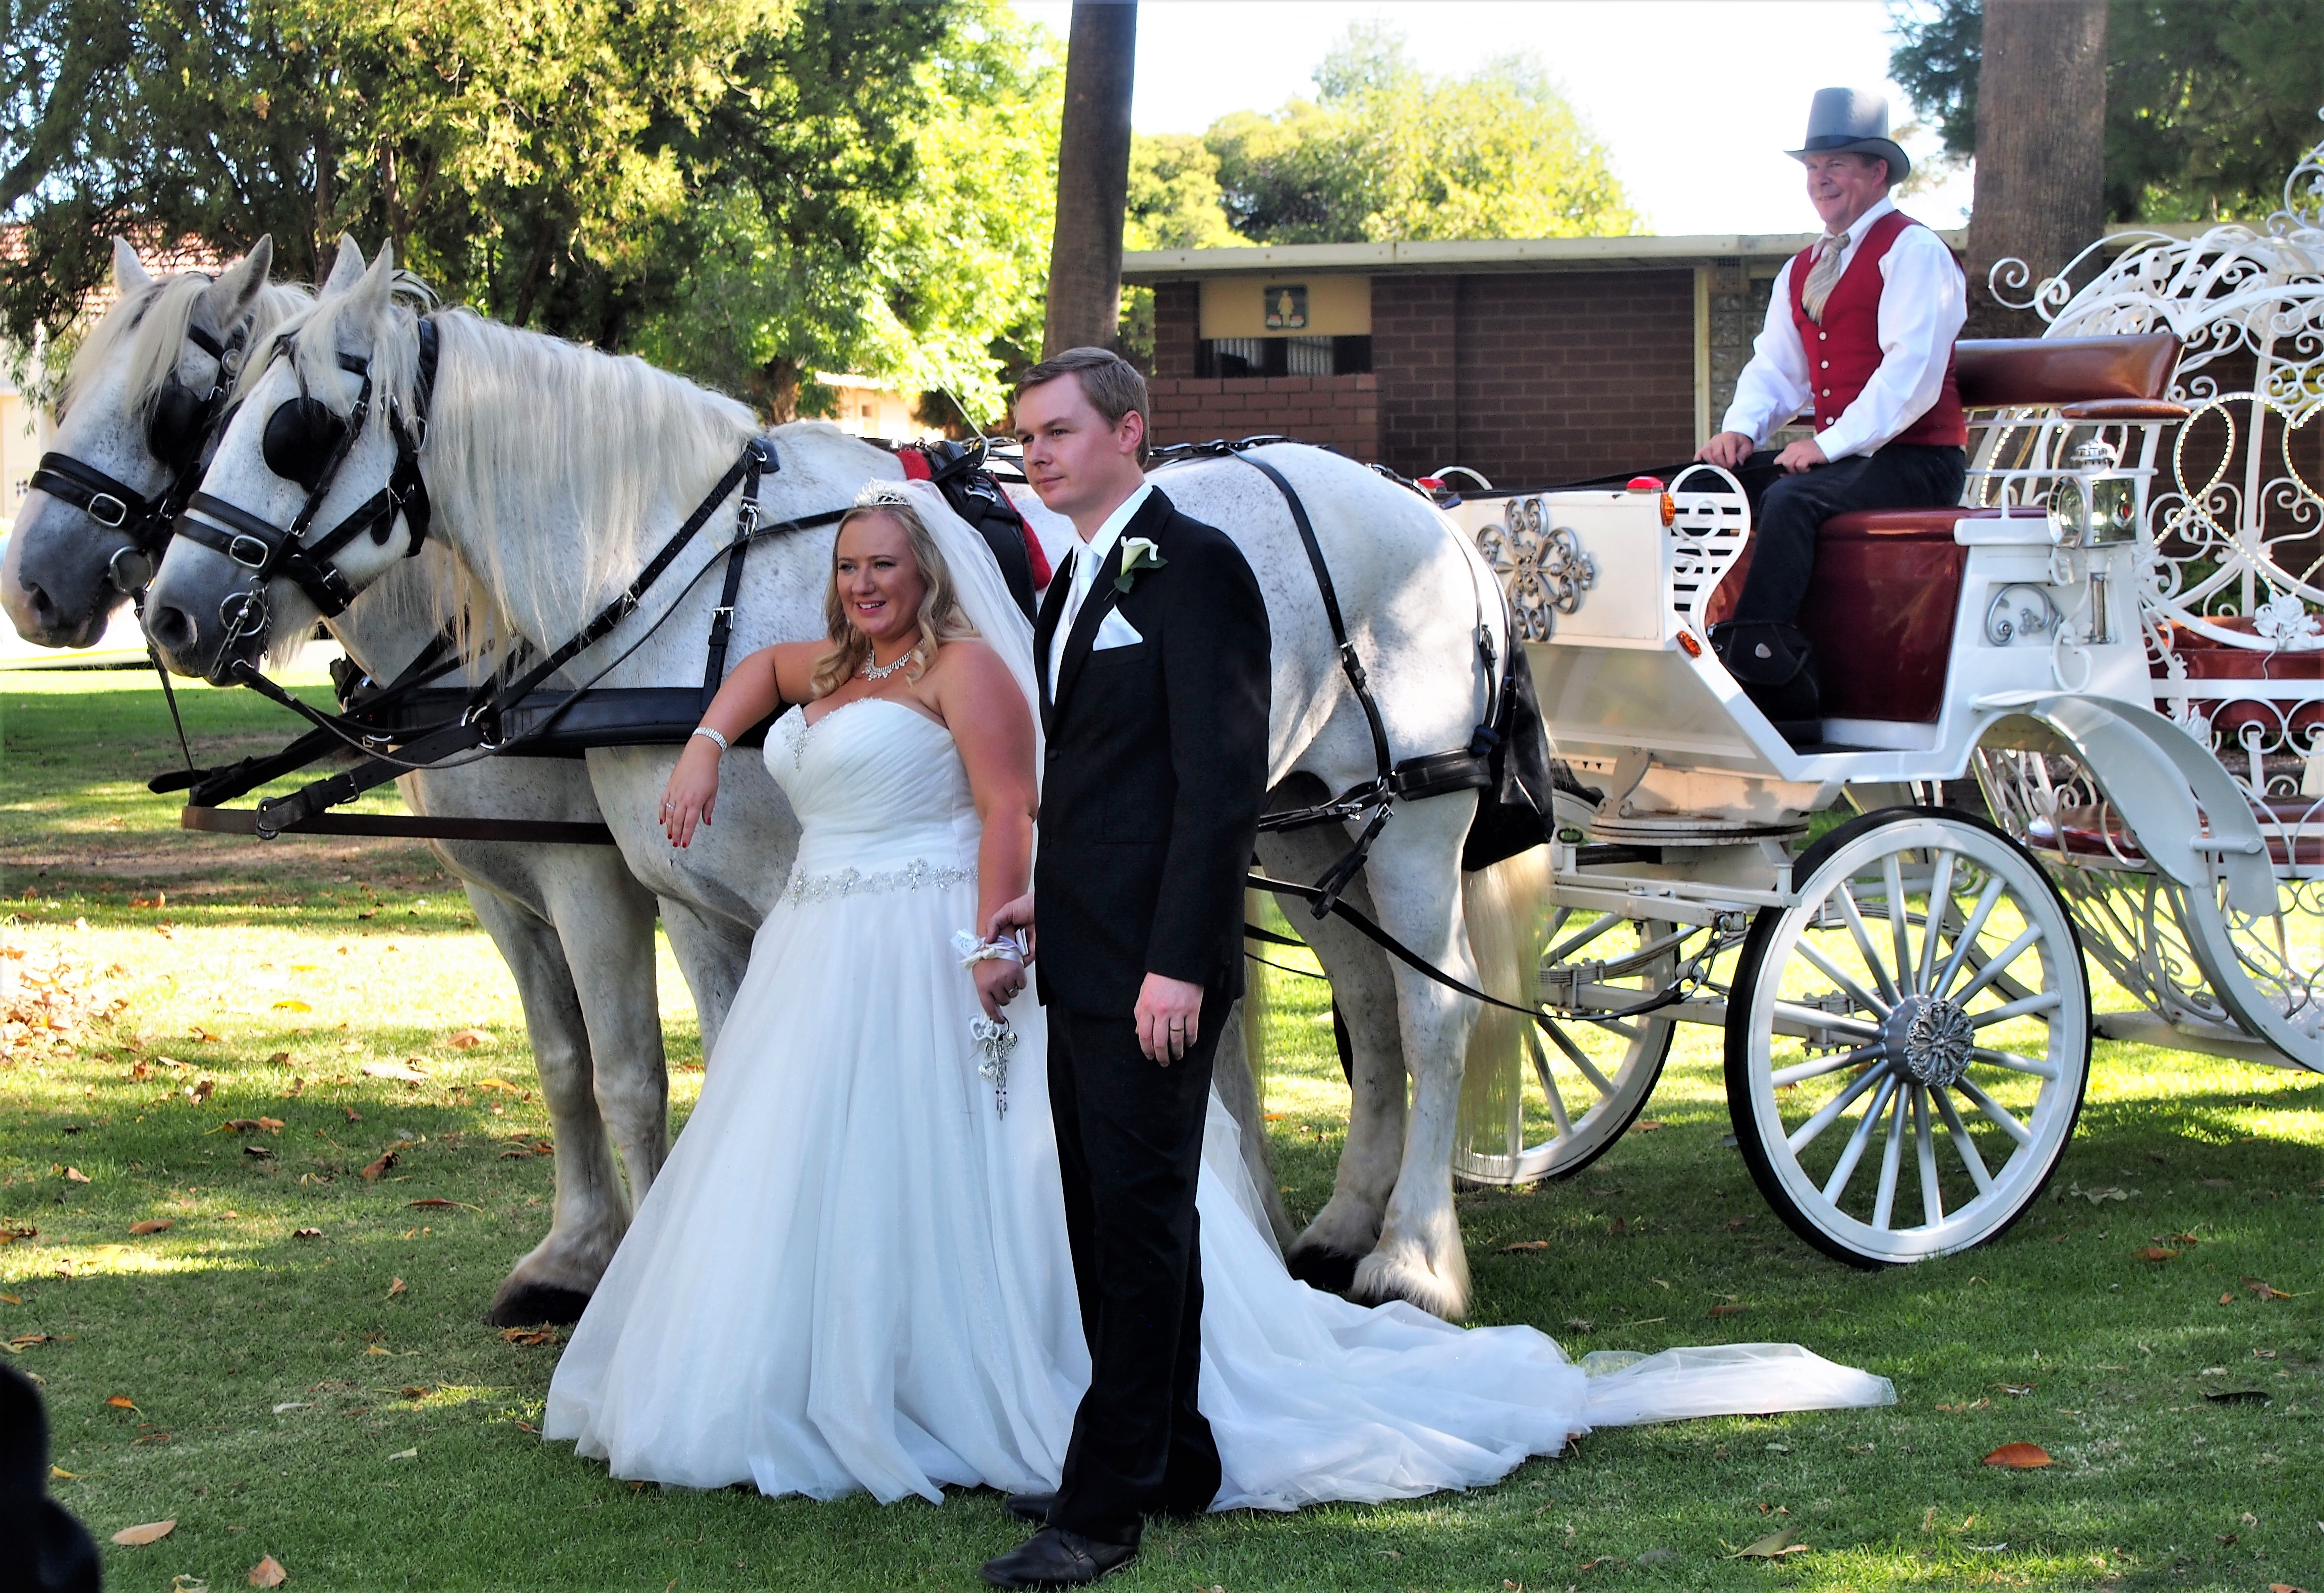 Etain: The Couple & Horses